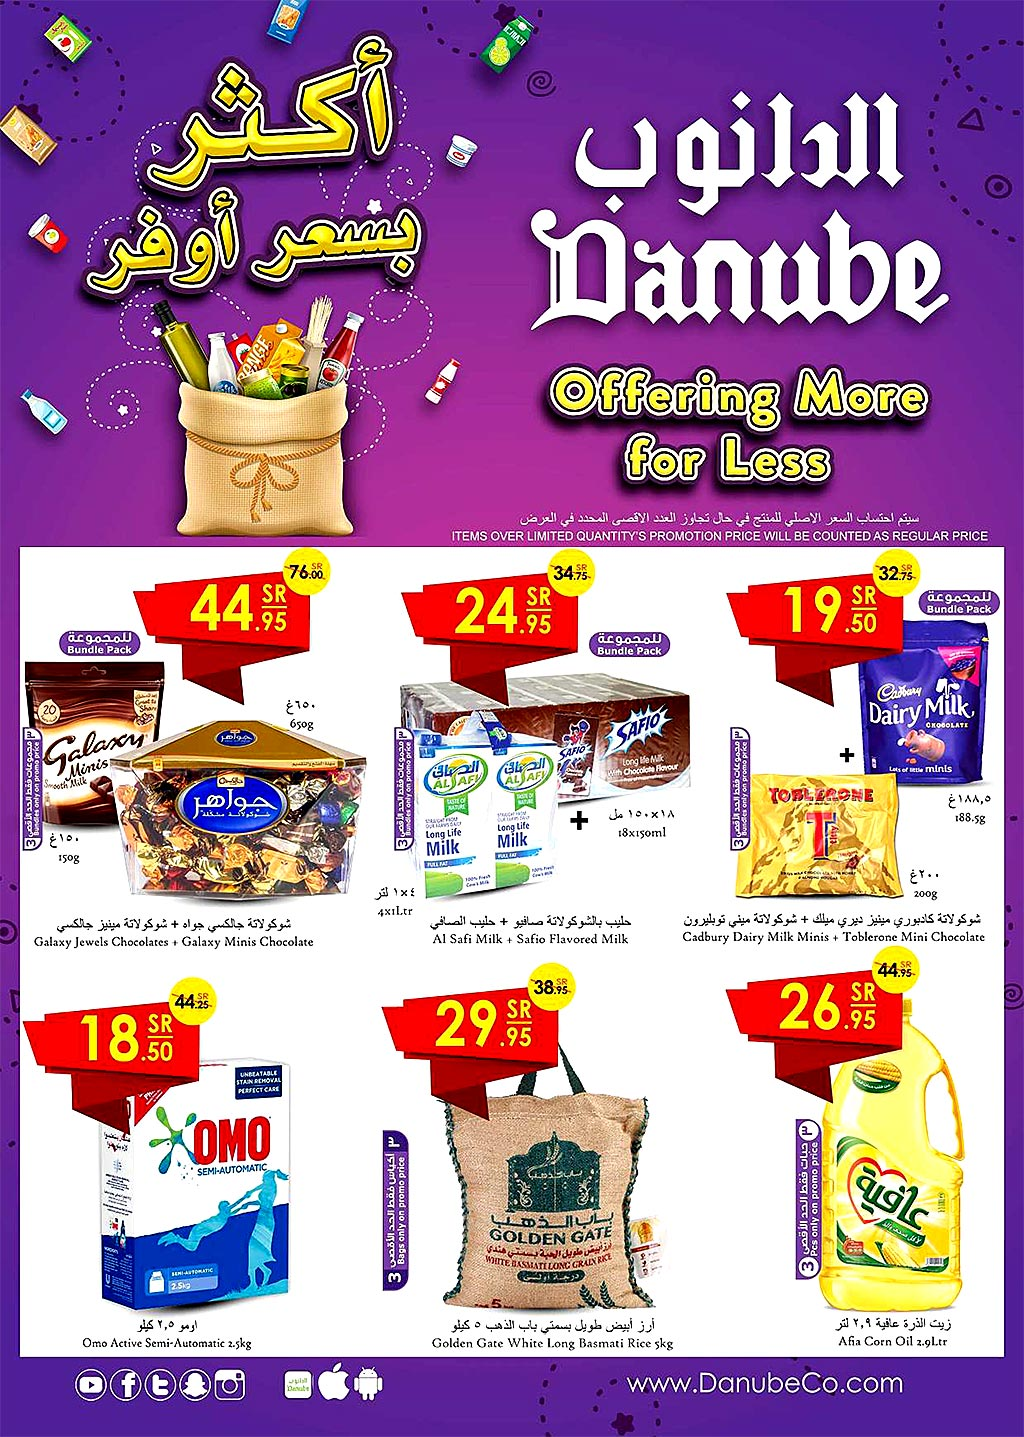 danube offers from 12feb to 19feb 2020 page number 1 عروض الدانوب من 12 فبراير حتى 19 فبراير 2020 صفحة رقم 1